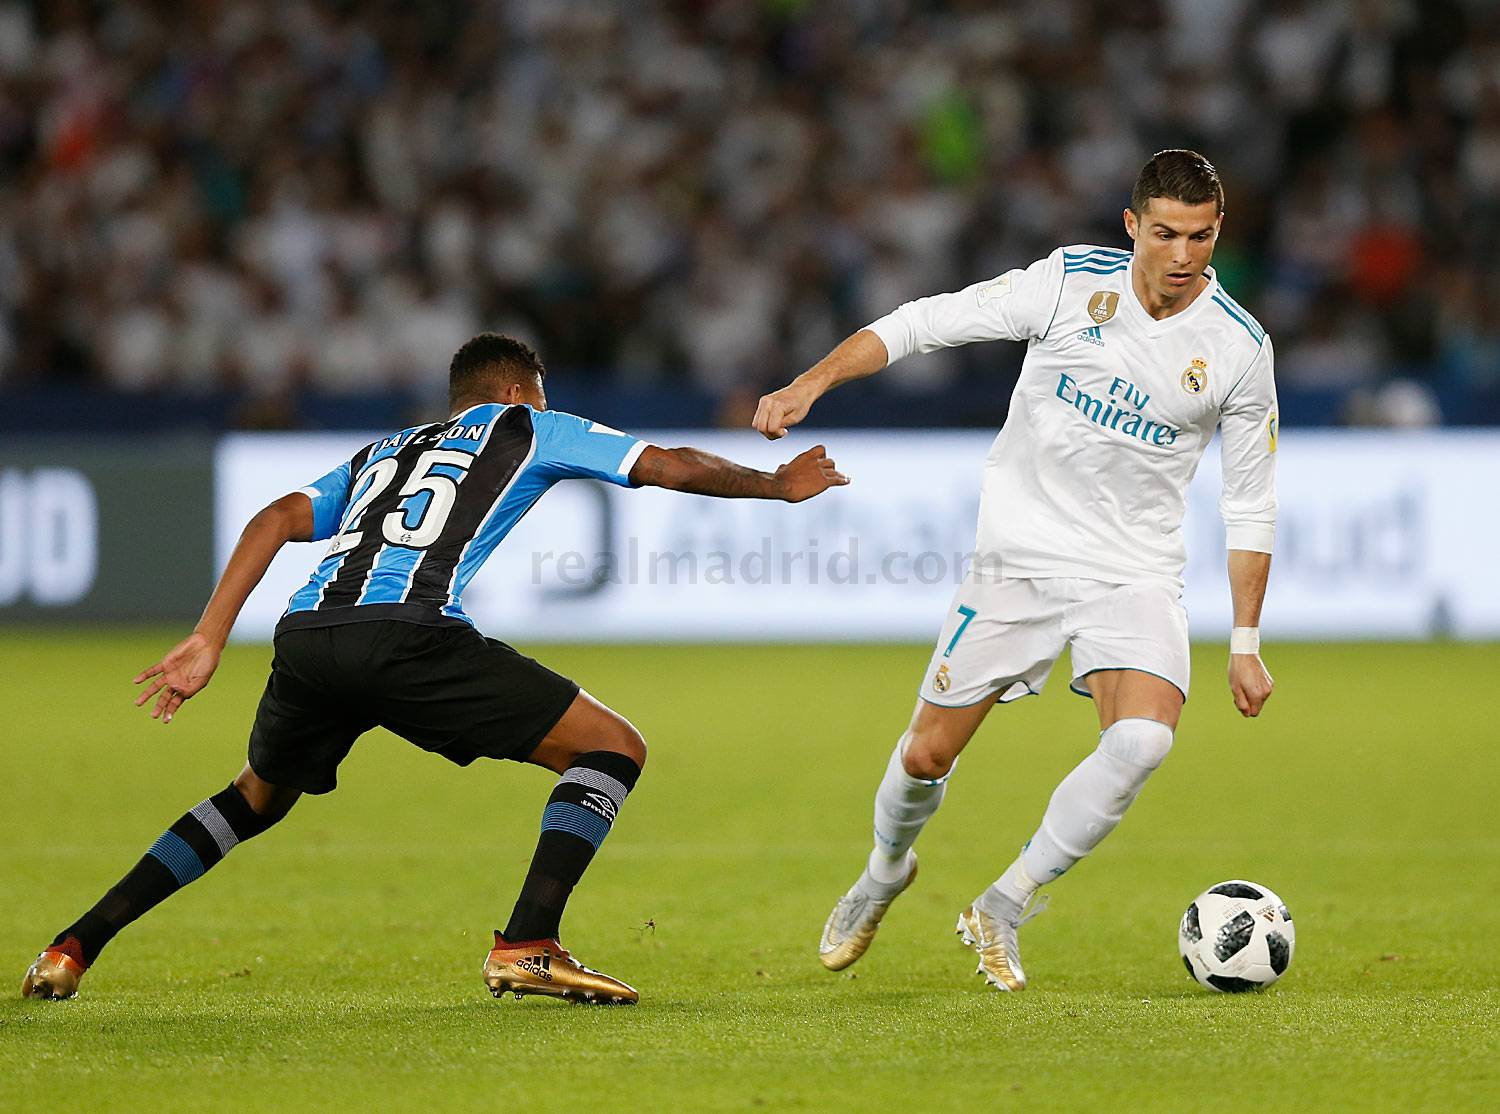 Real Madrid - Real Madrid - Gremio - 16-12-2017